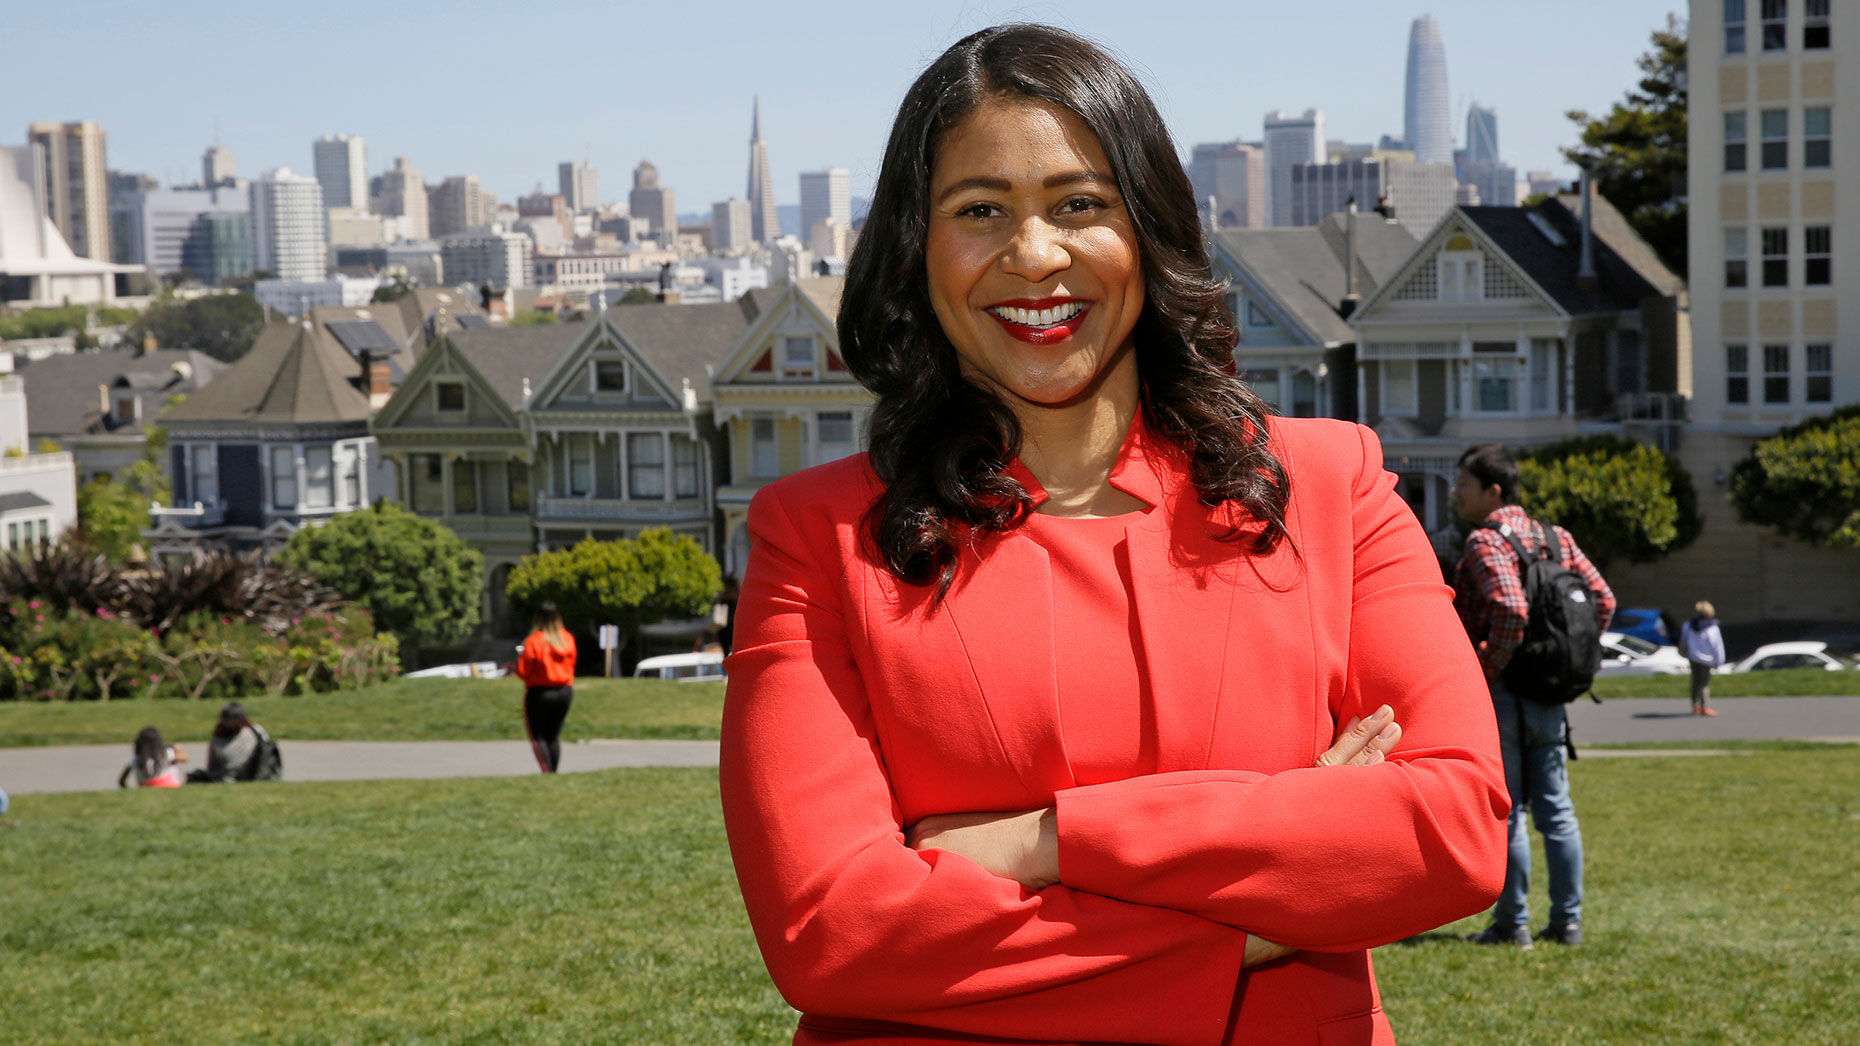 San Francisco mayoral candidate and Board of Supervisors President London Breed. Photo: AP